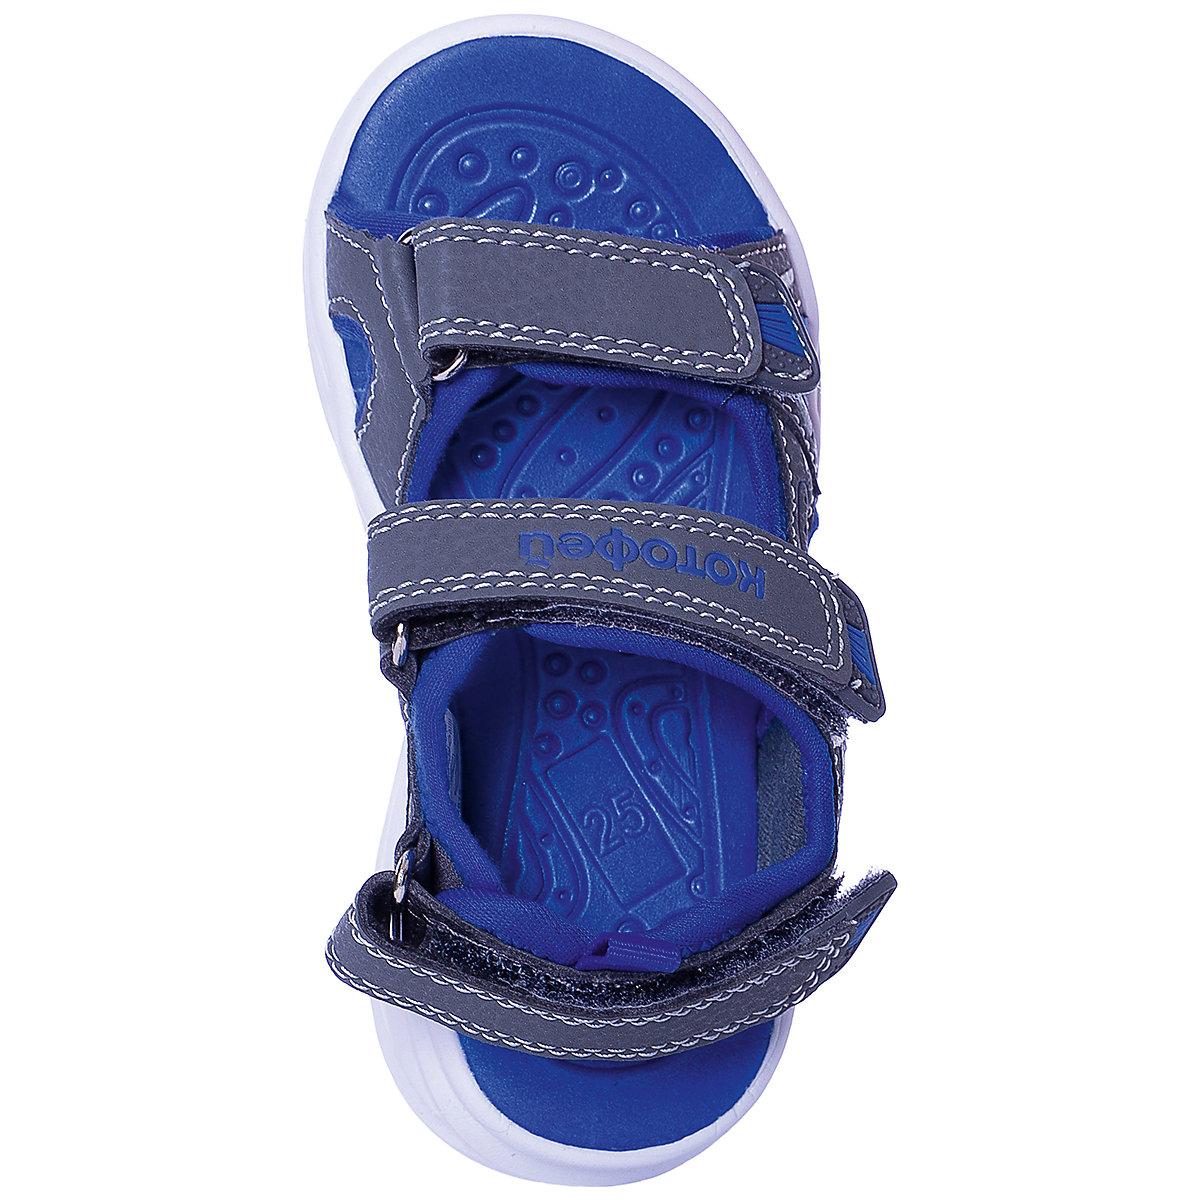 KOTOFEY Sandals 11319658 children's shoes comfortable and light girls and boys sandals adidas af3921 sports and entertainment for boys